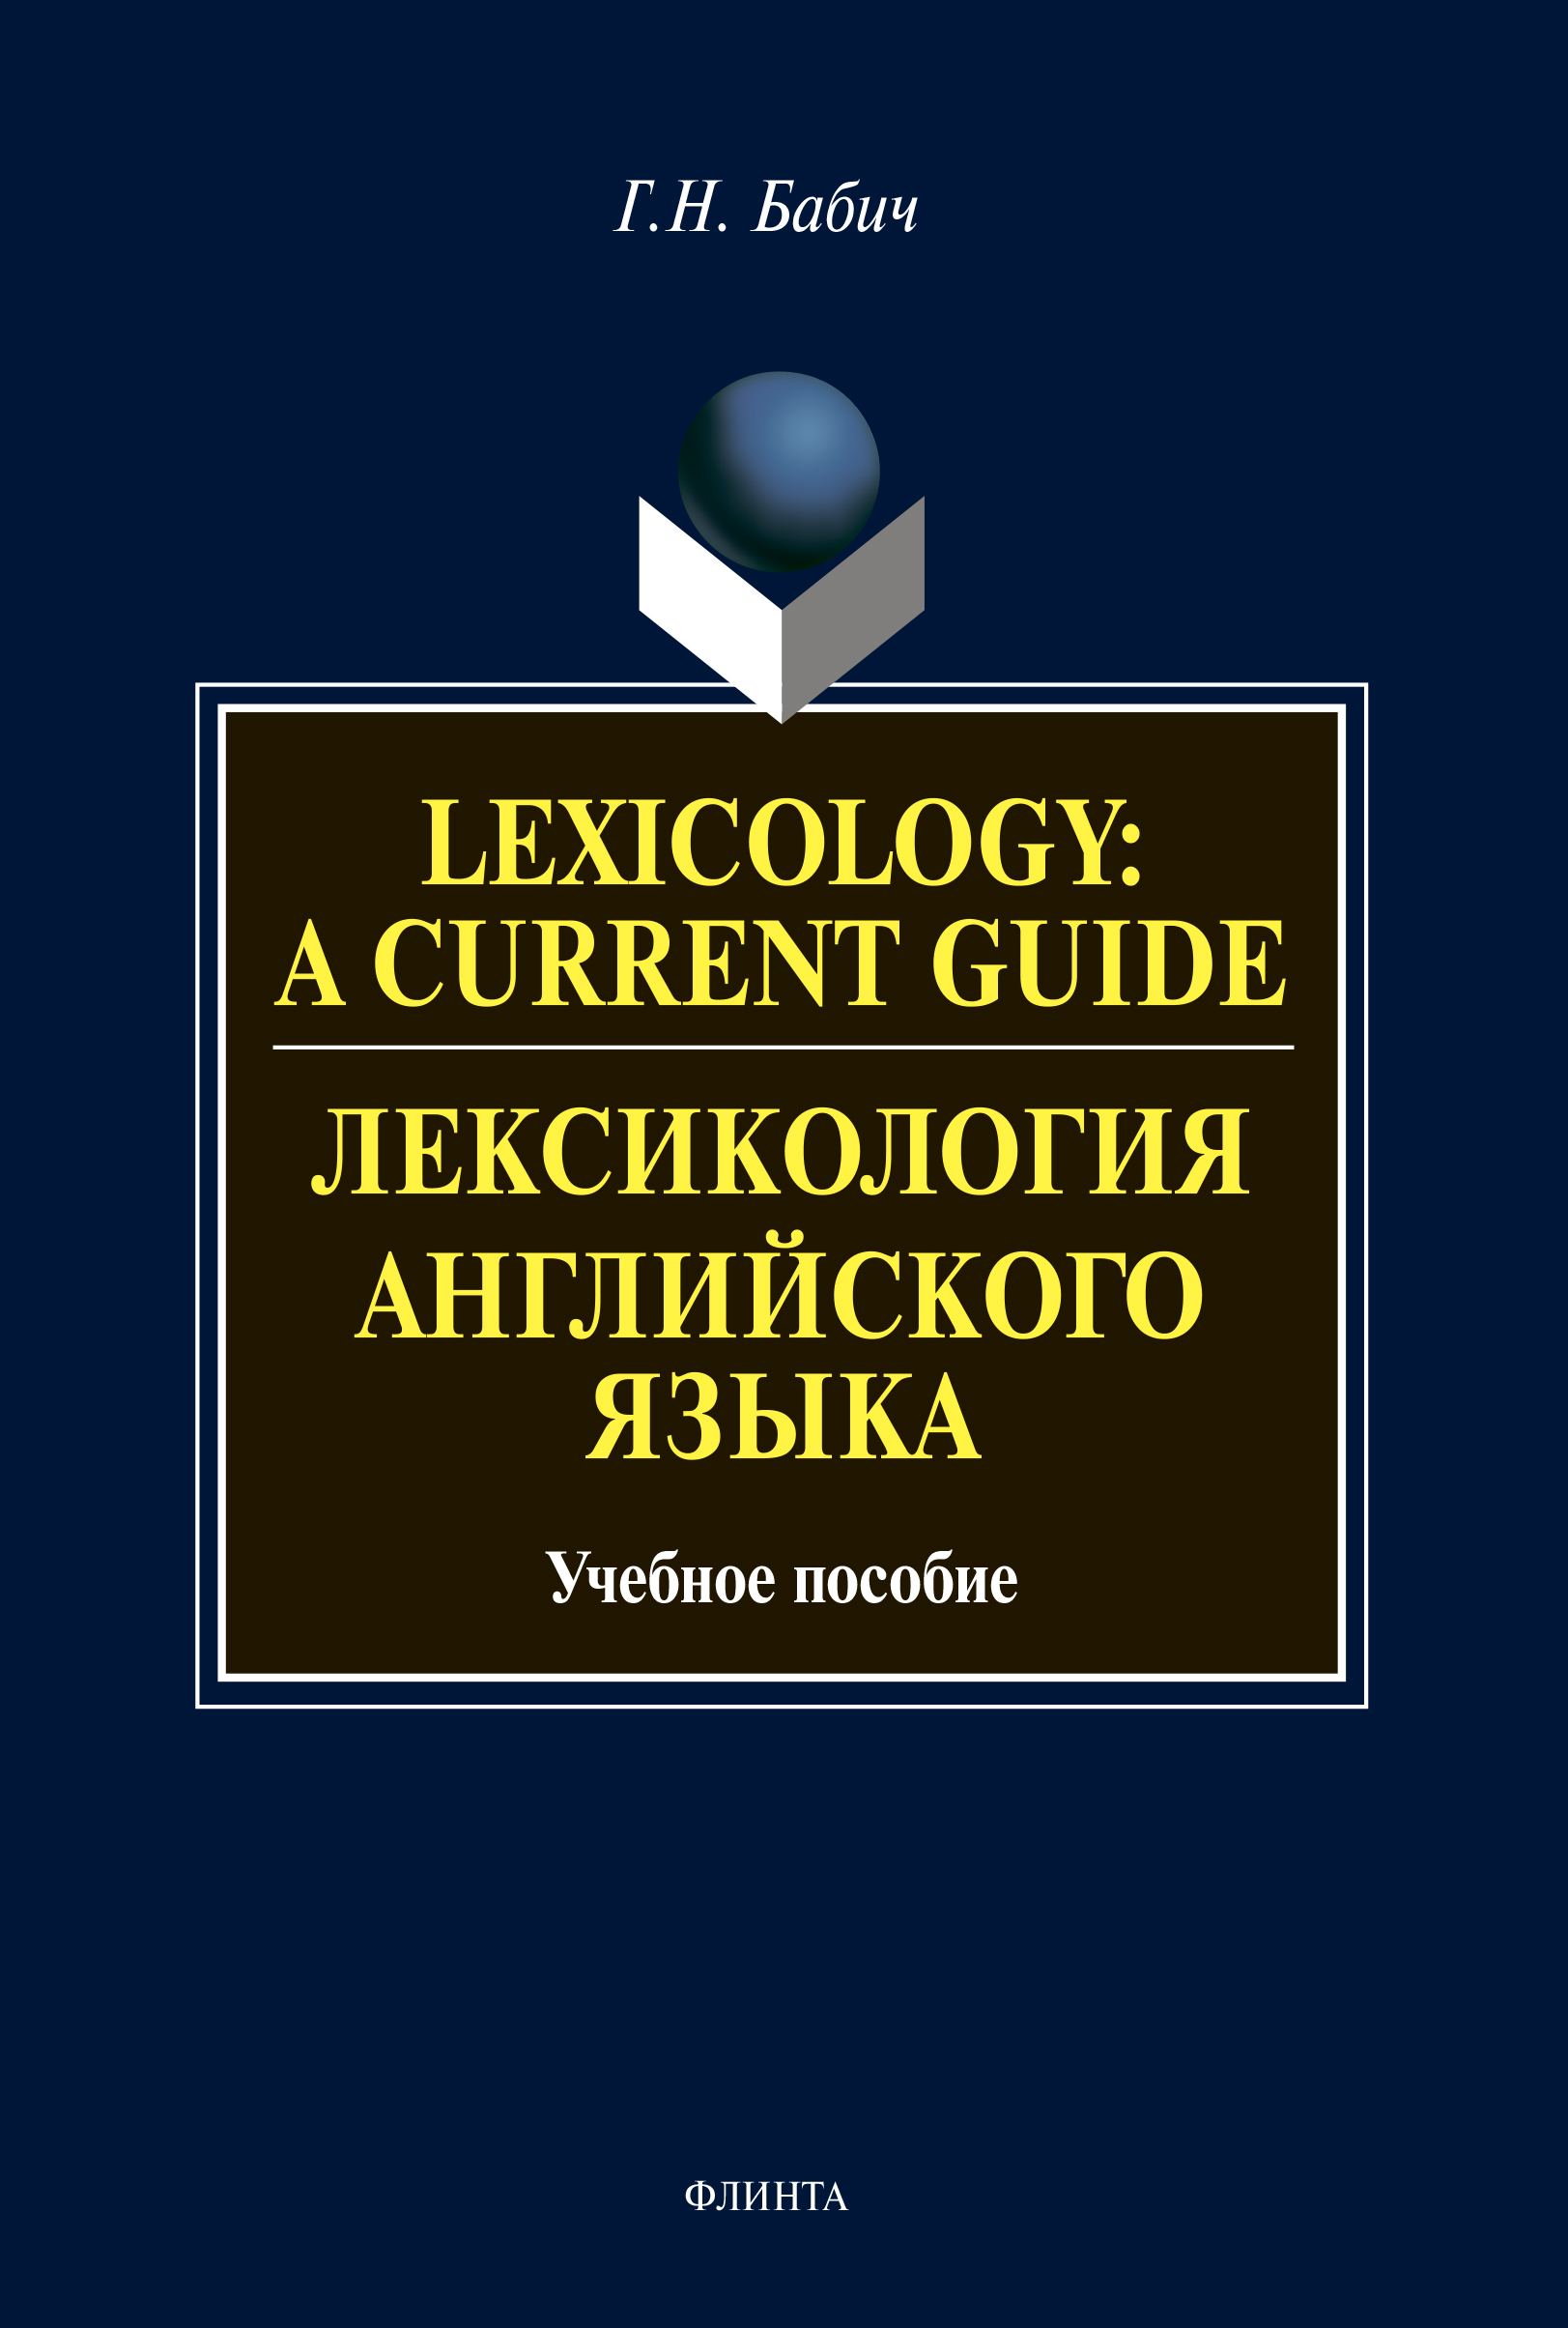 Г. Н. Бабич Lexicology: A Current Guide / Лексикология английского языка. Учебное пособие джон колтрейн маккой тайнер стив дэвис элвин джонс john coltrane my favorite things lp